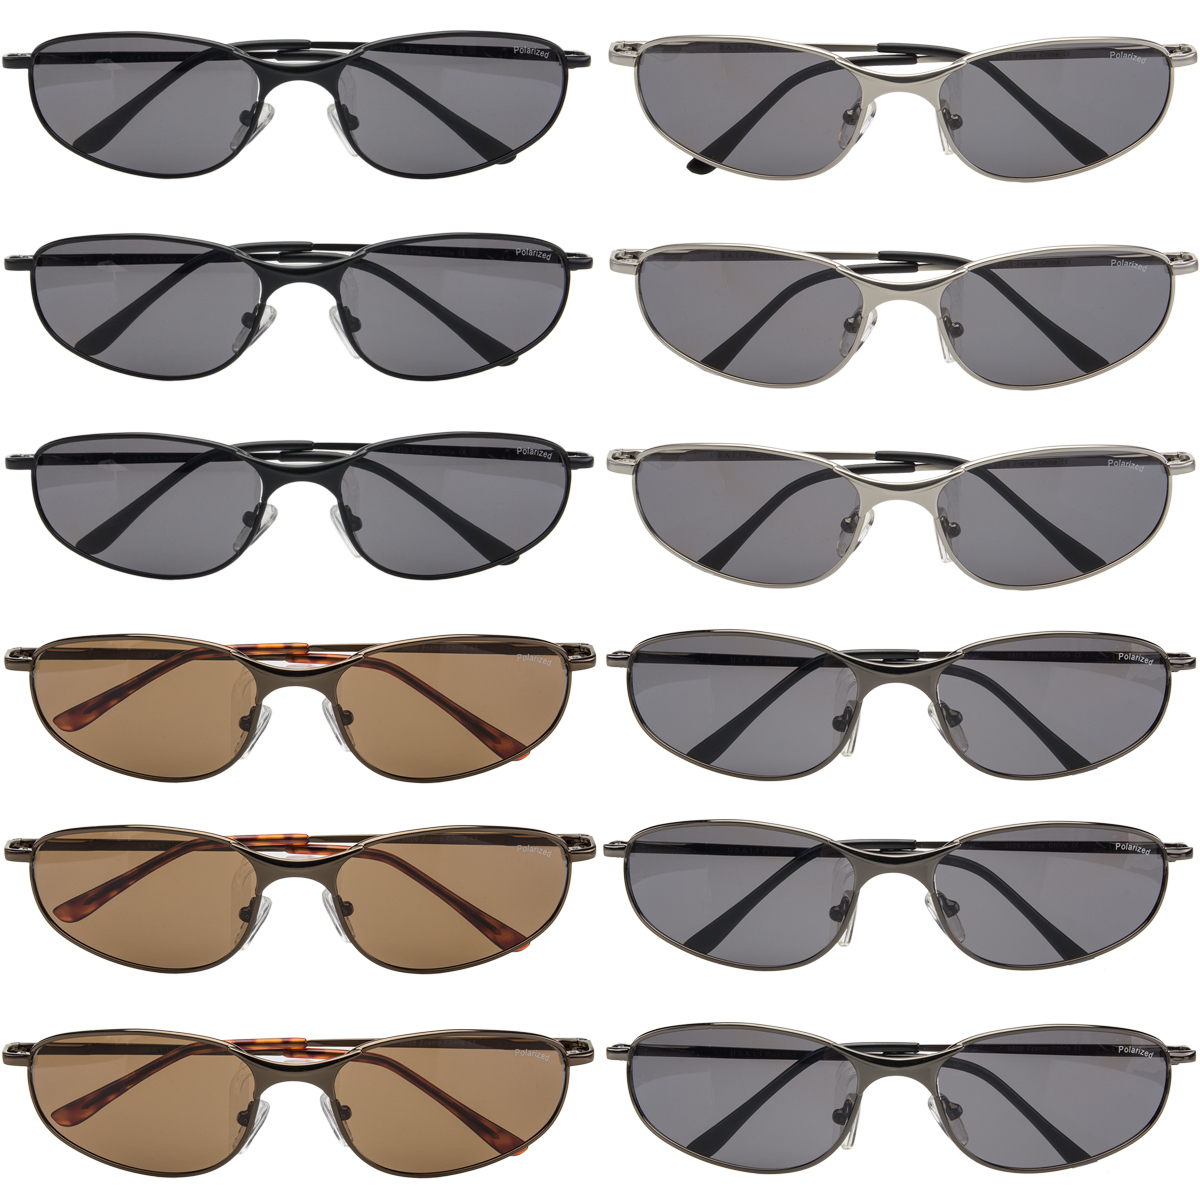 RV Sports Sunglasses Polarized 12 Pairs Extreme Polarized Assorted 100% UV Protection for Mens Womens